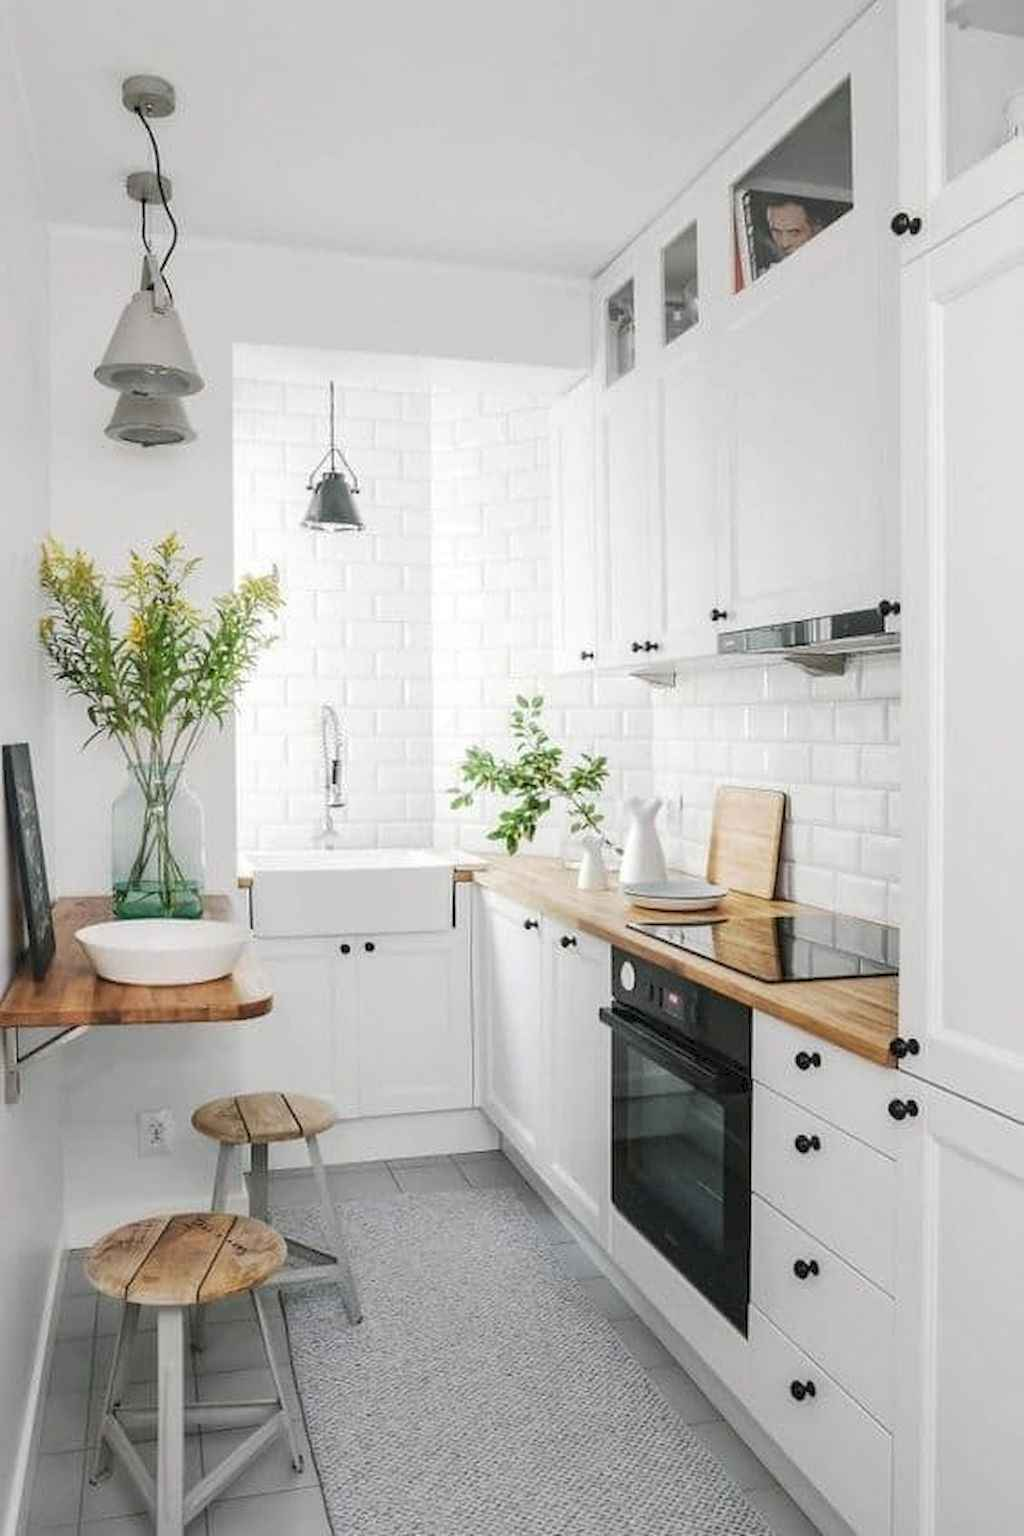 Simply Apartment Kitchen Decorating Ideas On A Budget (31)